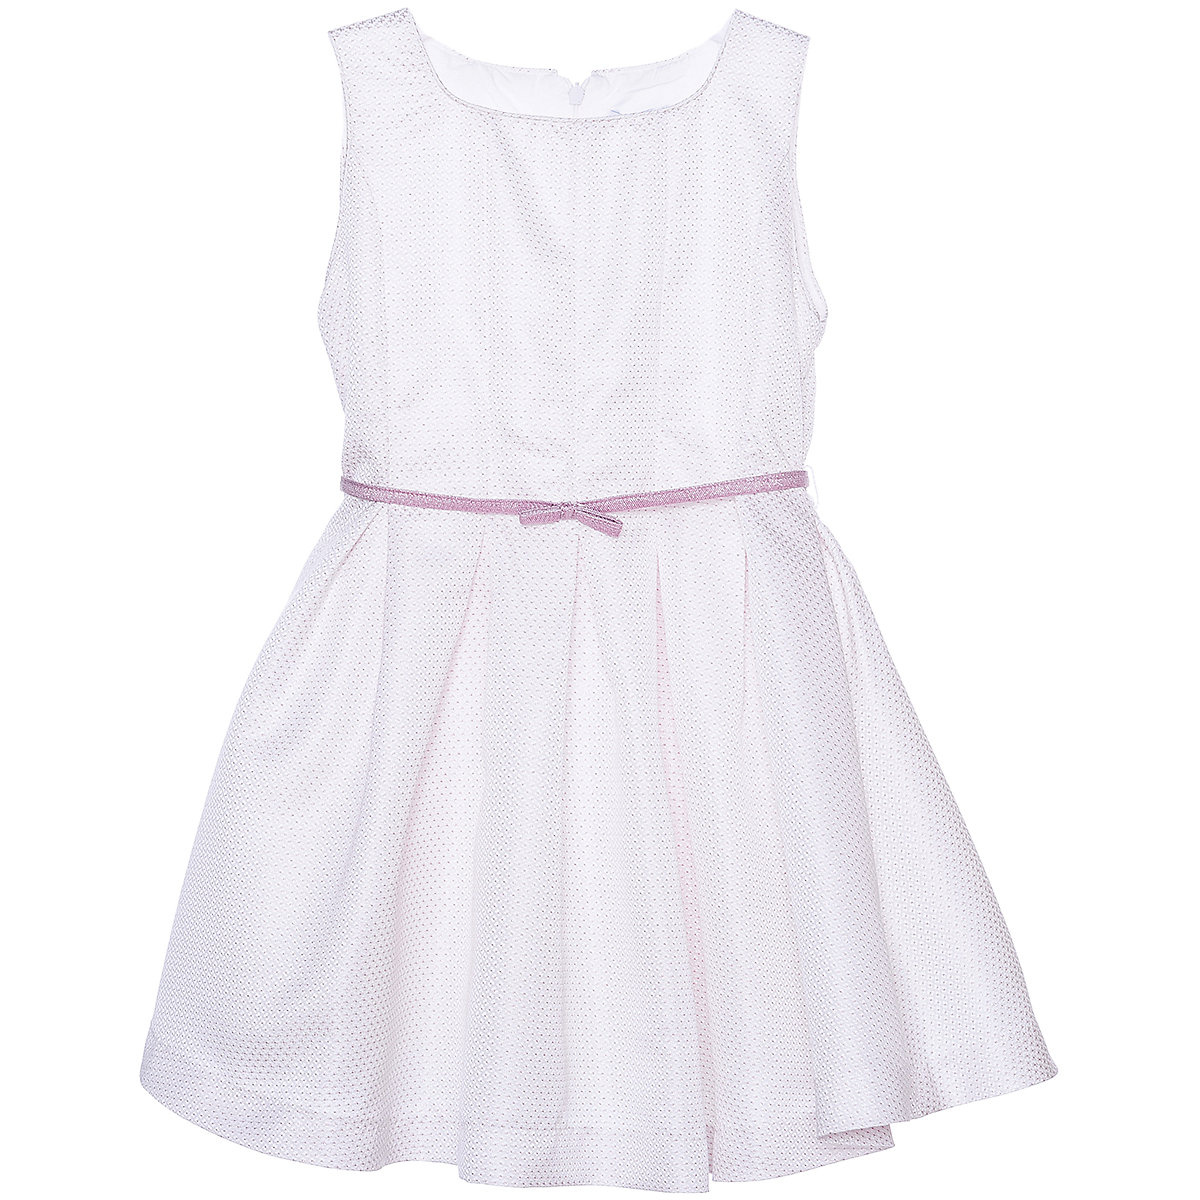 MAYORAL Dresses 10678547 Girl Children Party fitted pleated skirt Pink Polyester Preppy Style Solid Knee-Length Sleeveless Sleeve